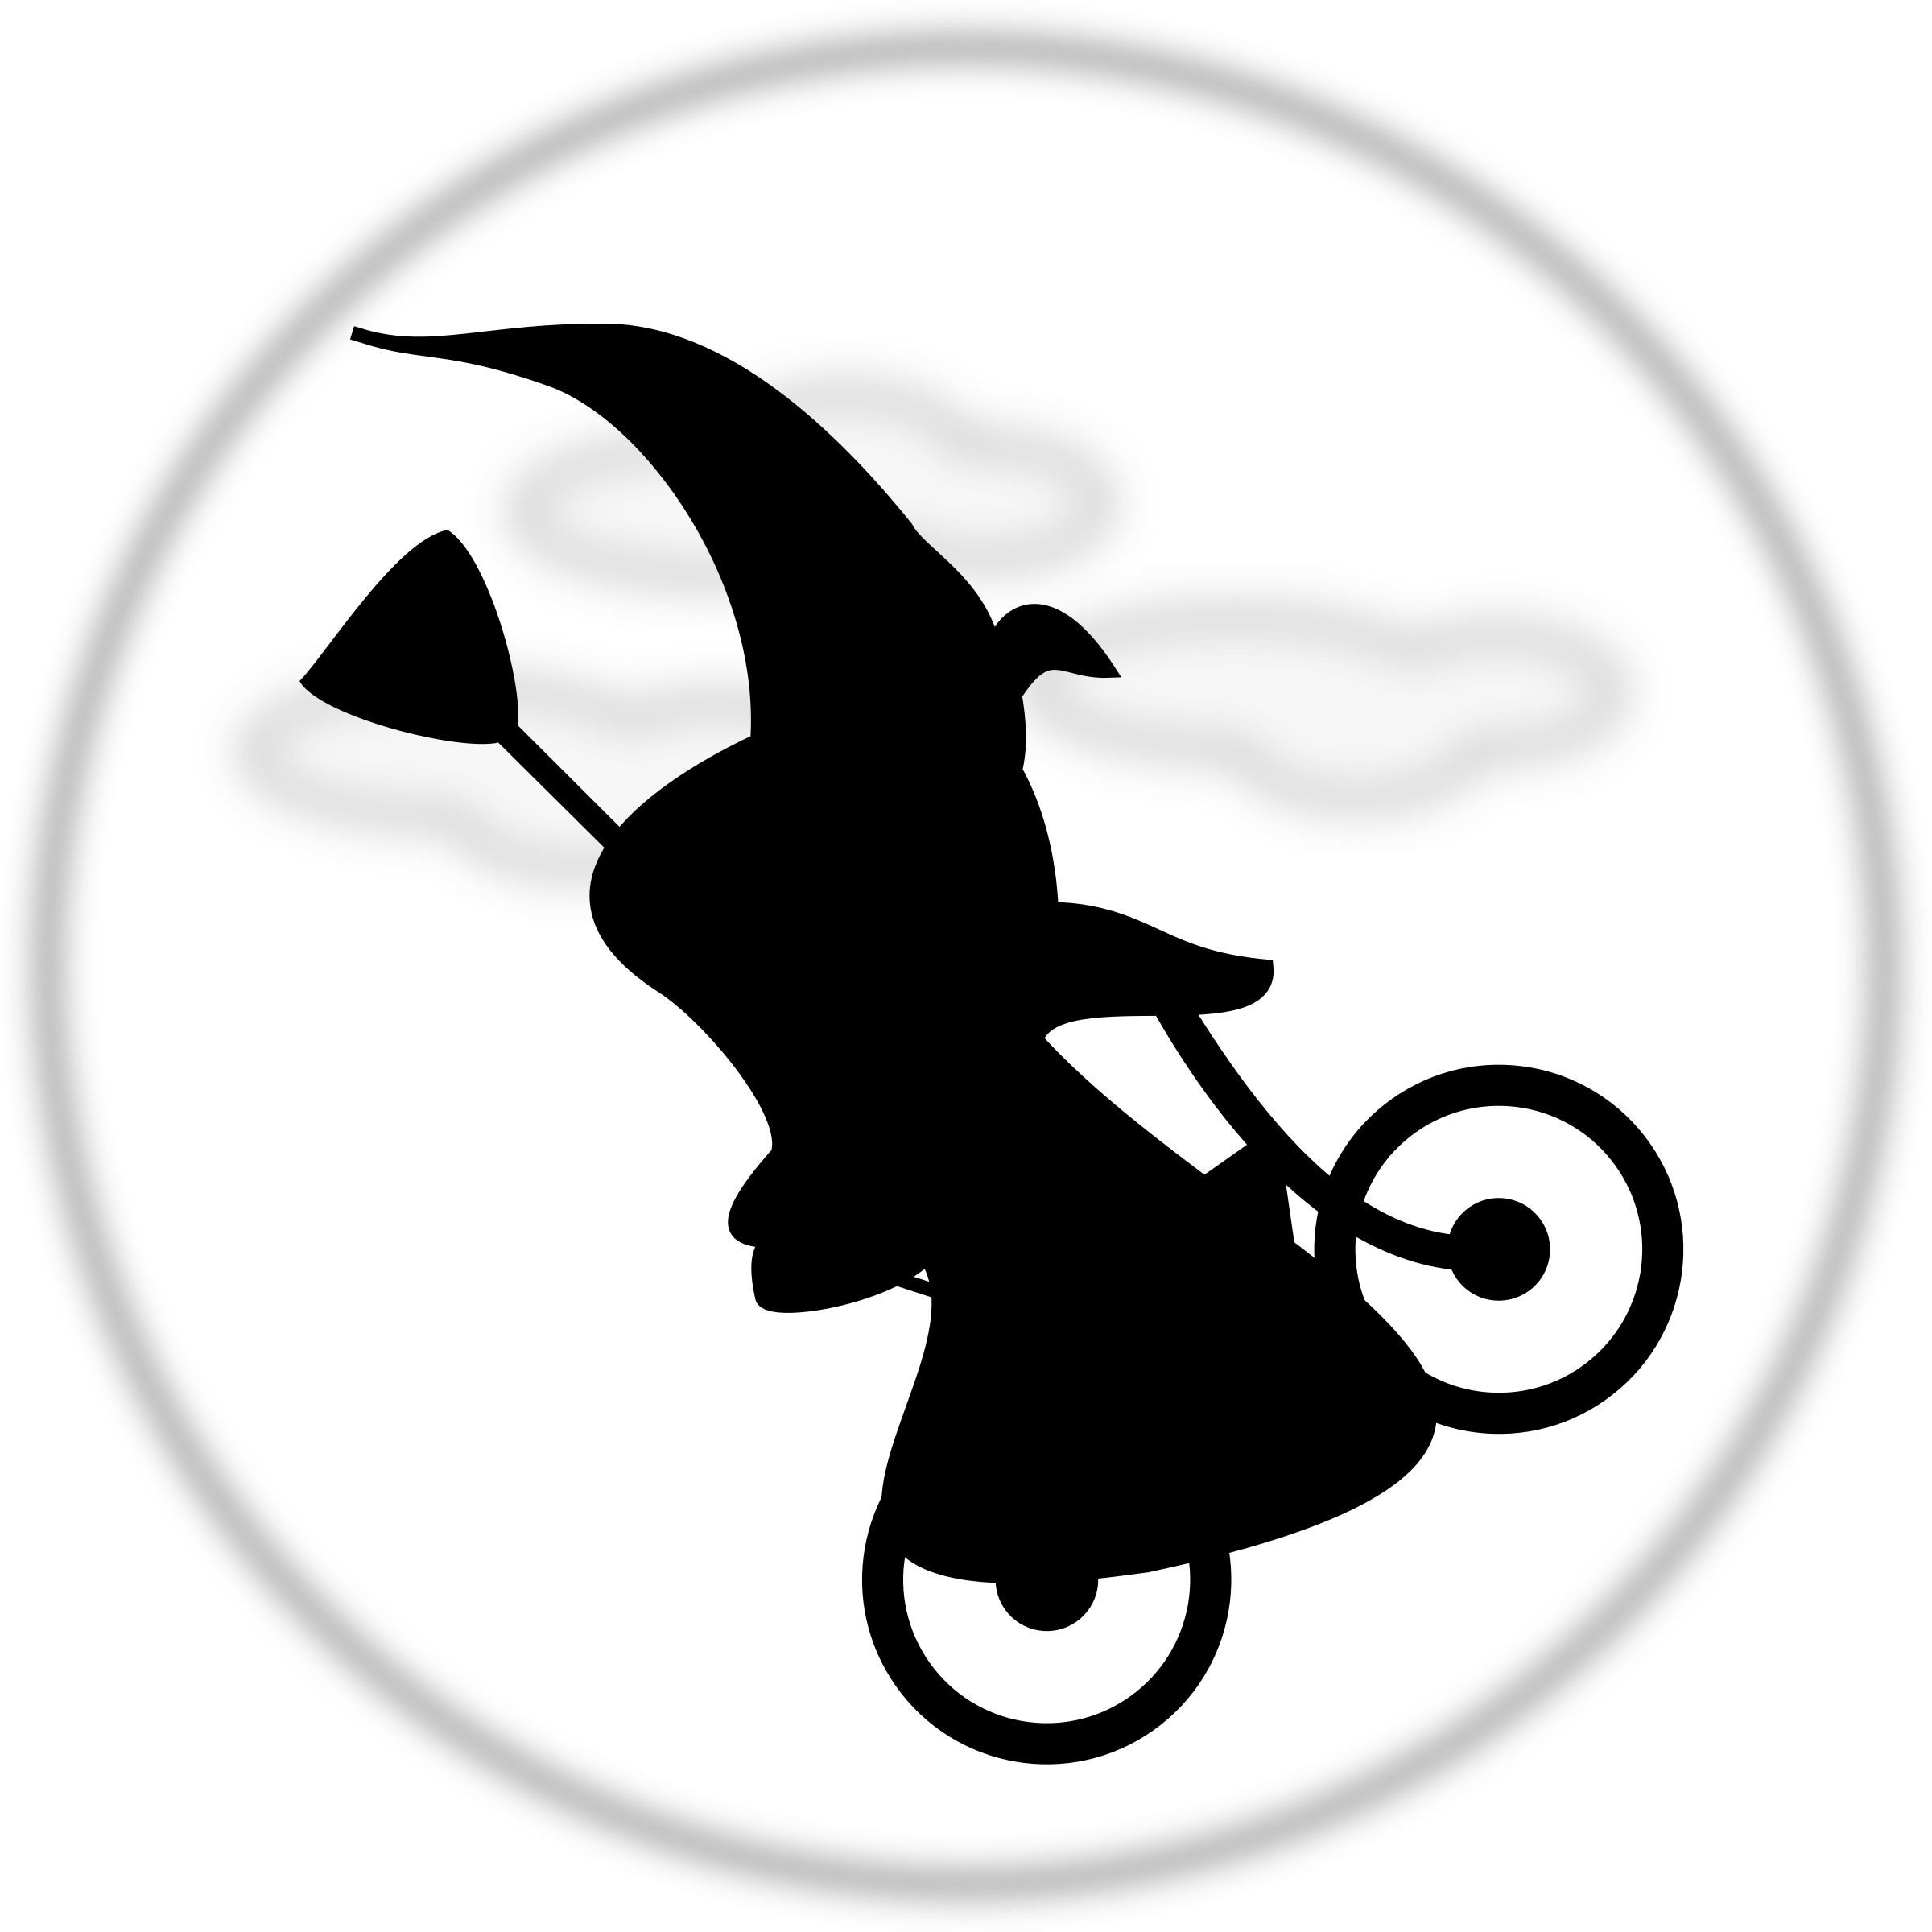 WitchOnABicycle by TomBrough